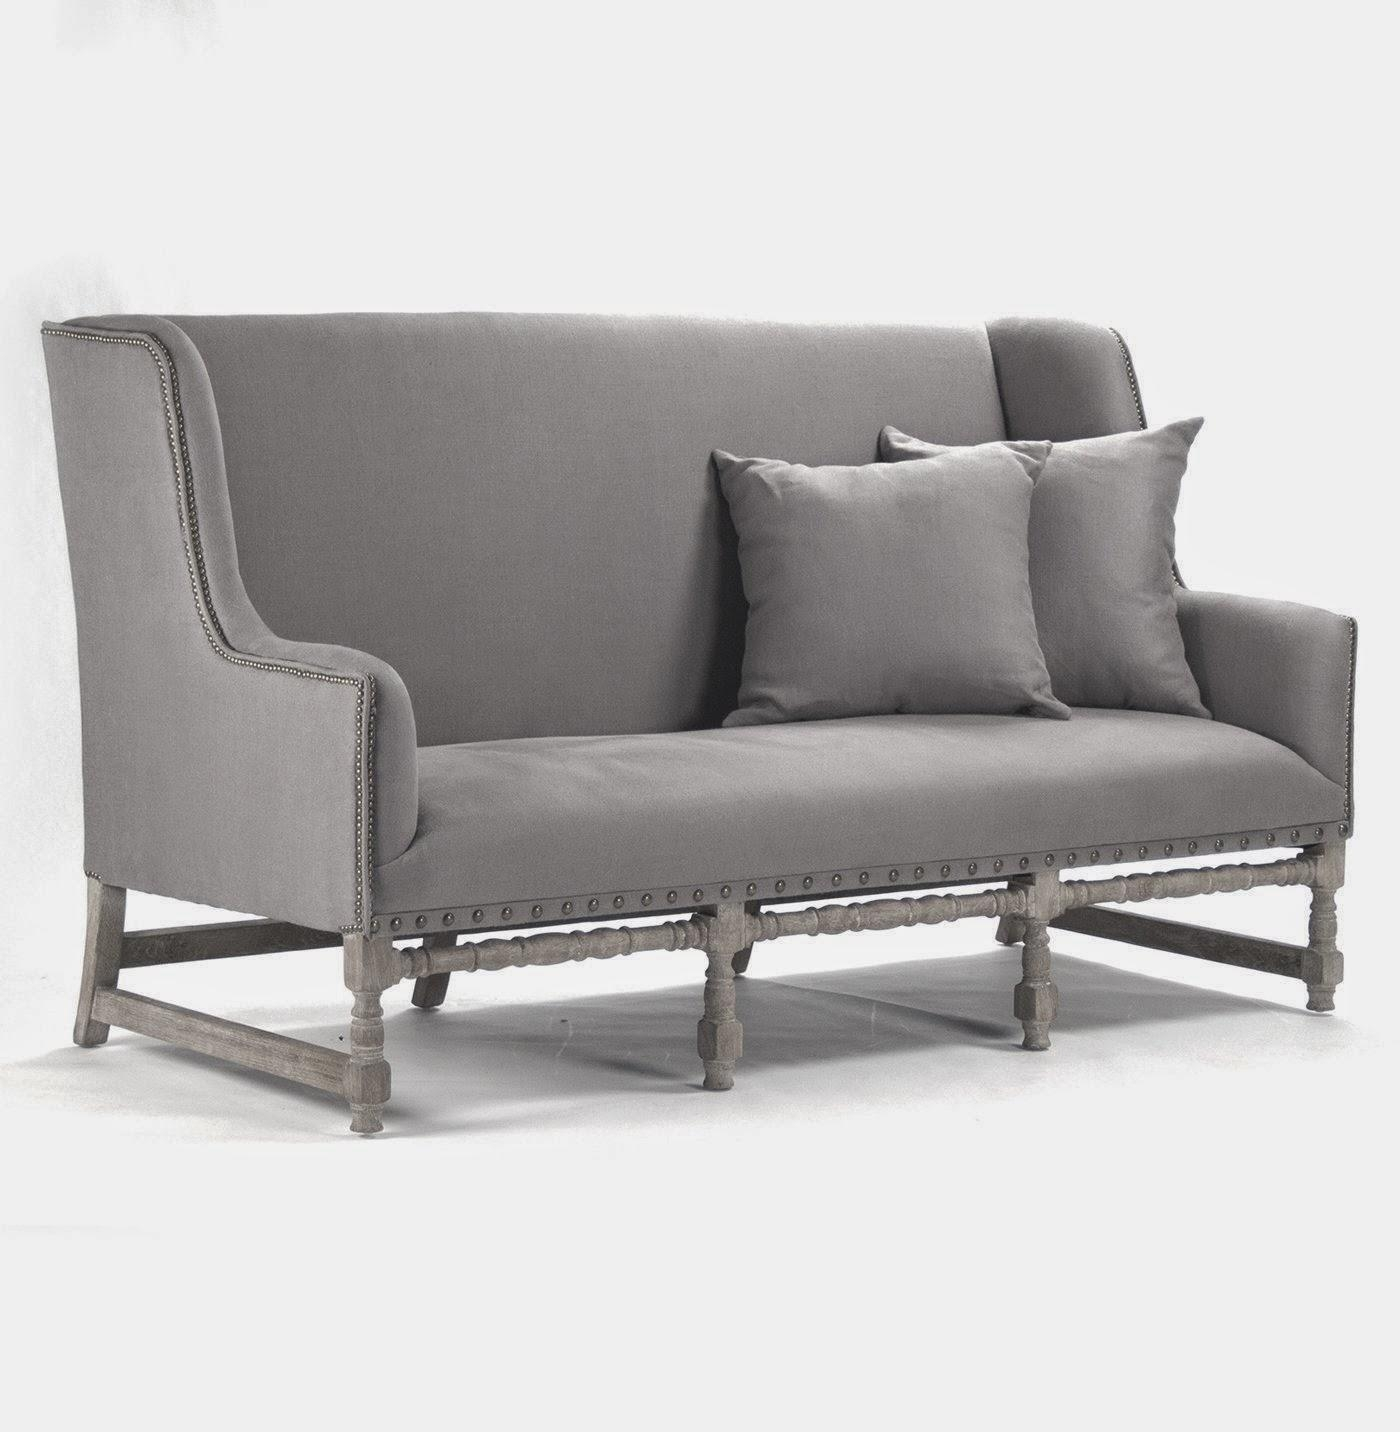 Modern Sectional Sofa With Chaise | Tehranmix Decoration Within Retro Sectional Couch (Image 10 of 20)